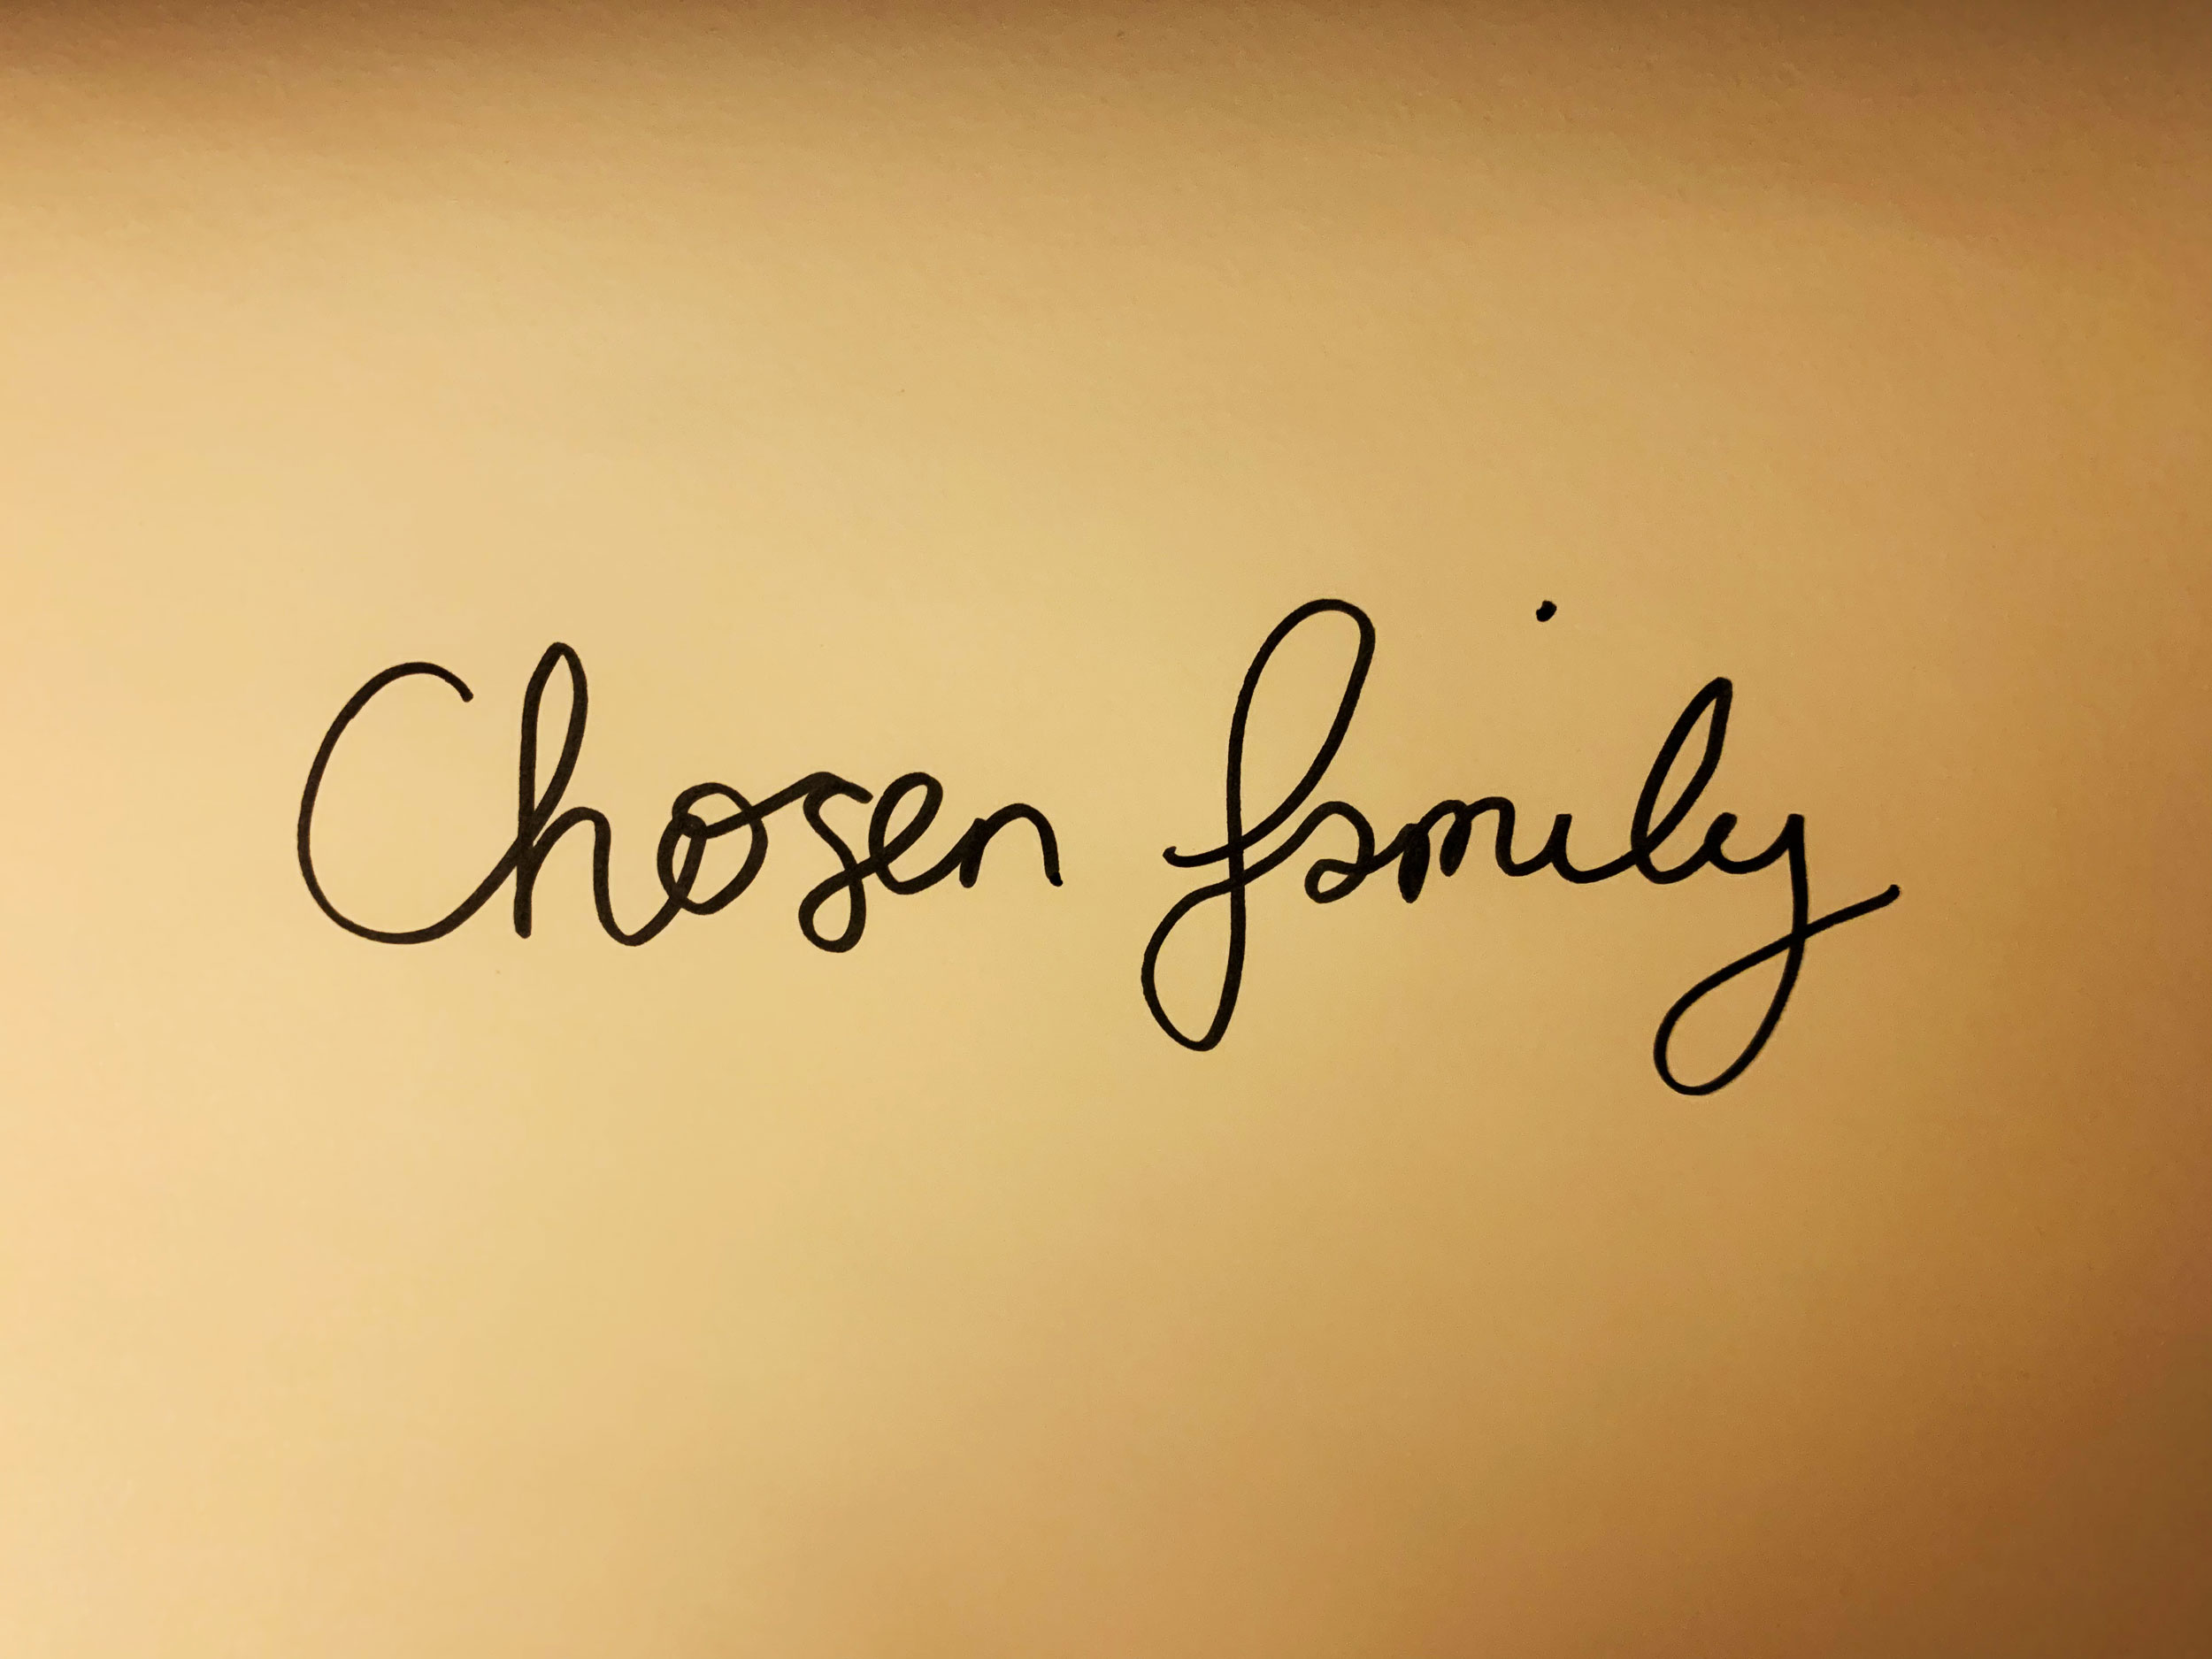 Chosen family. Drawing Luke Hockley.